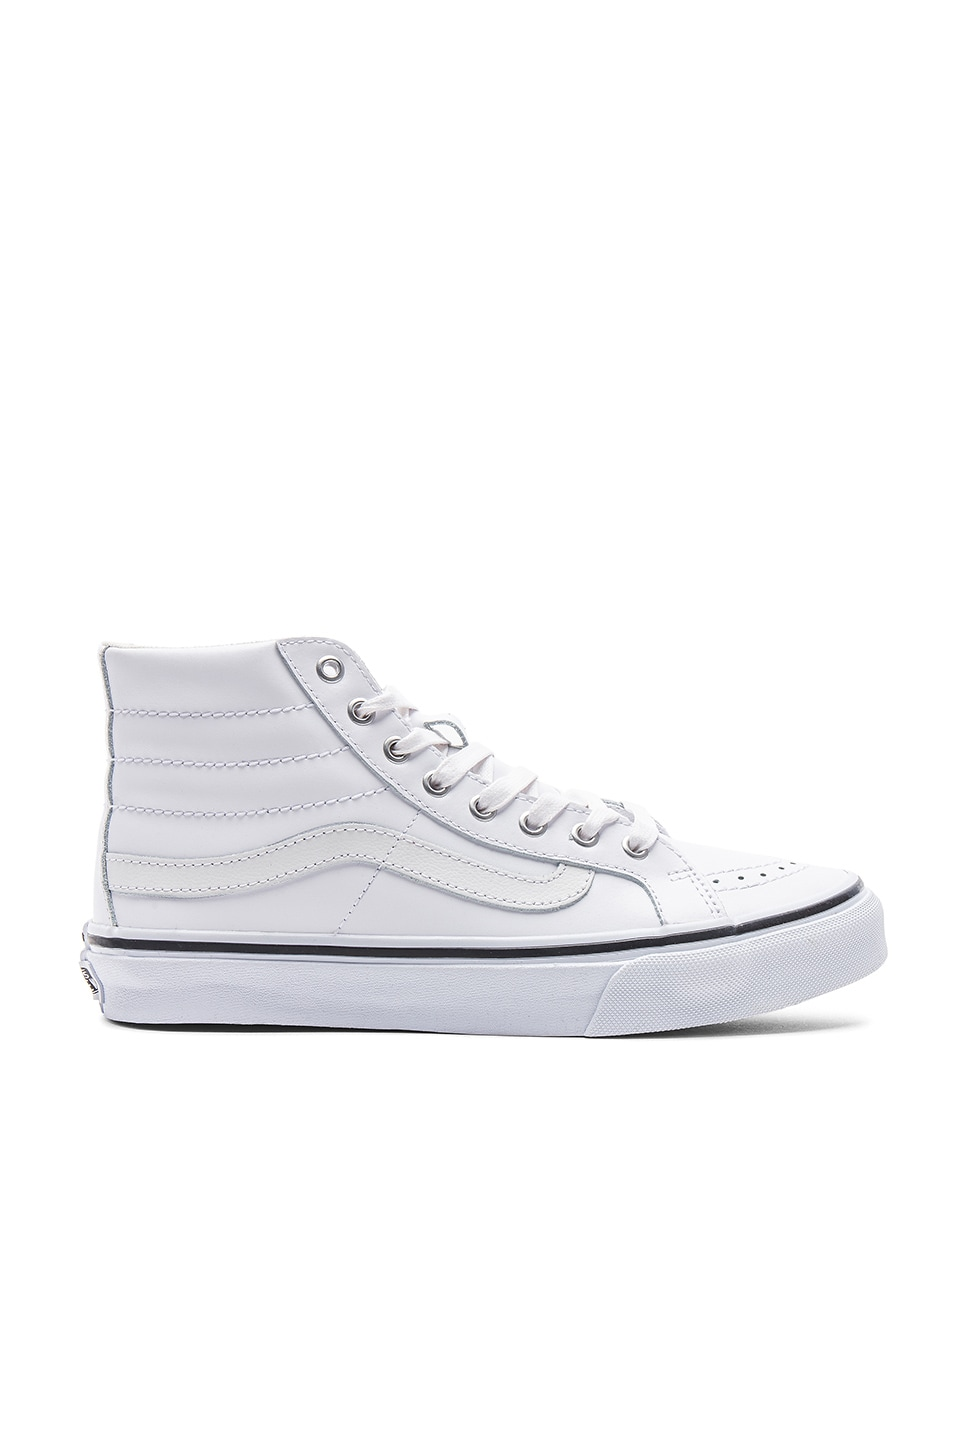 Vans Shine Sk8-Hi Slim Sneaker in True White